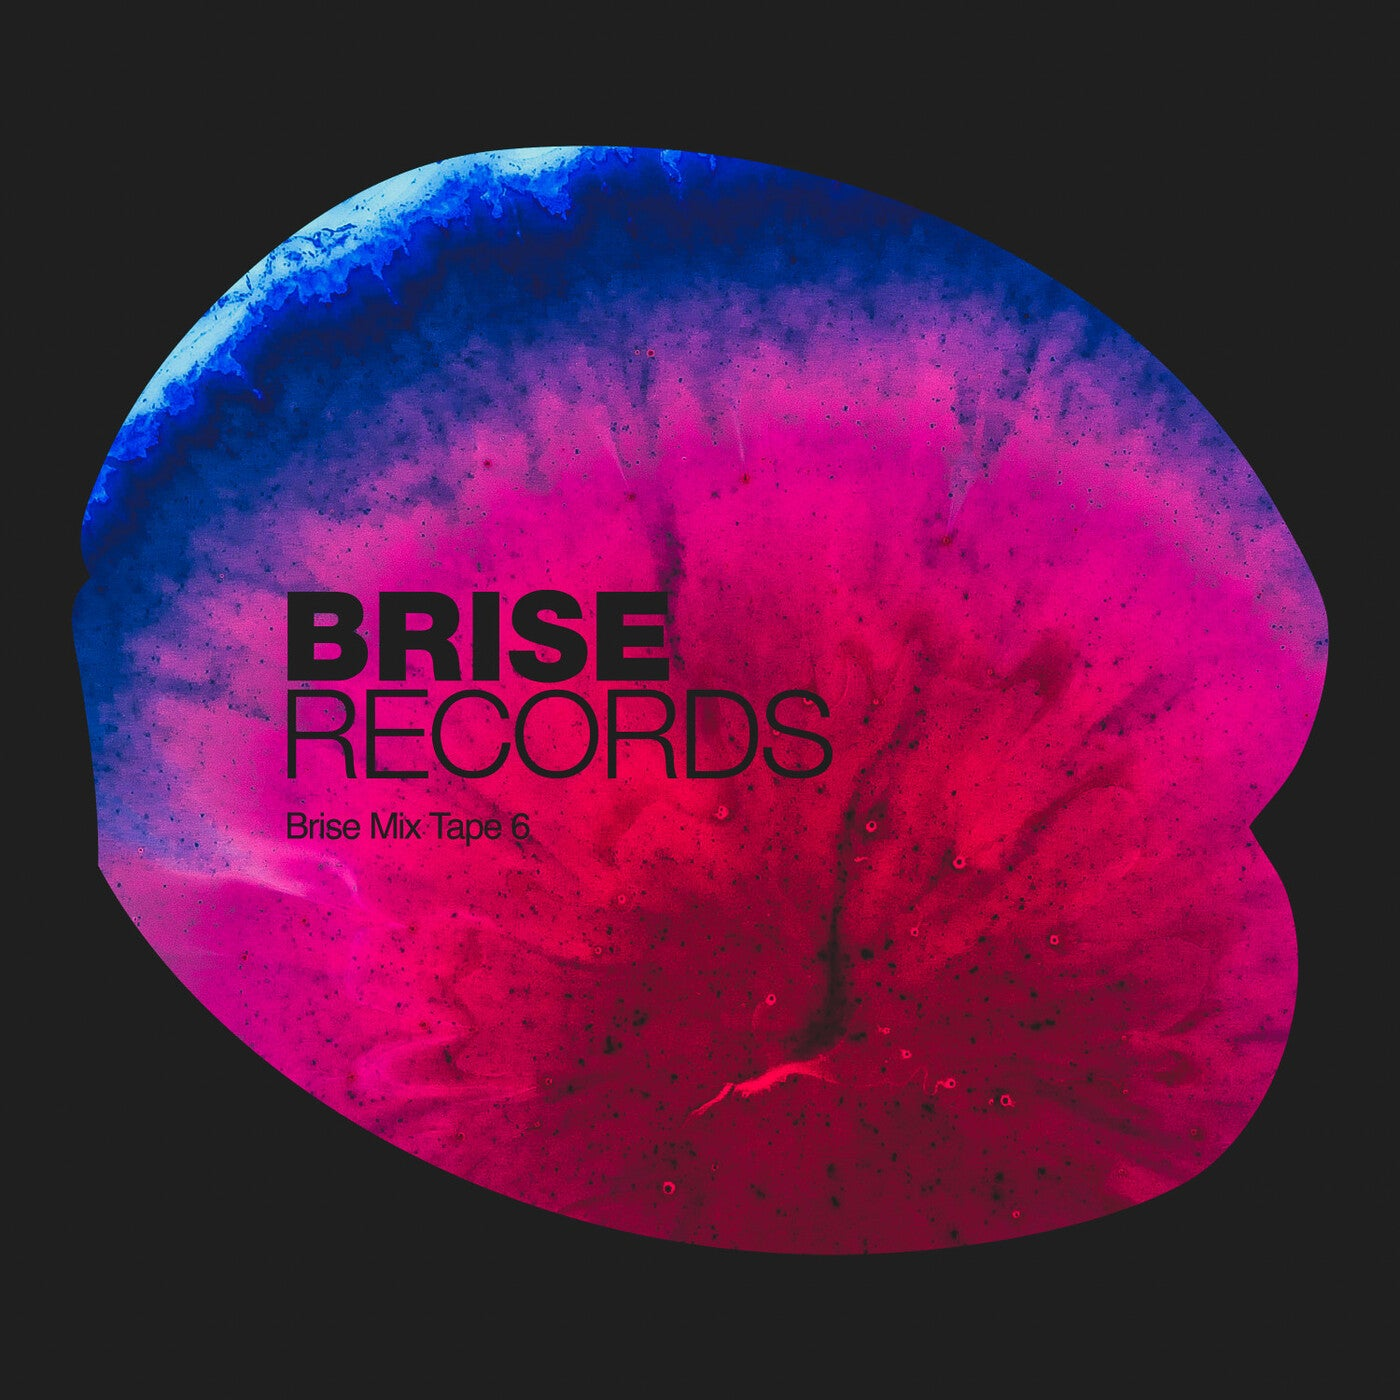 Download Brise Mix Tape 6 on Electrobuzz